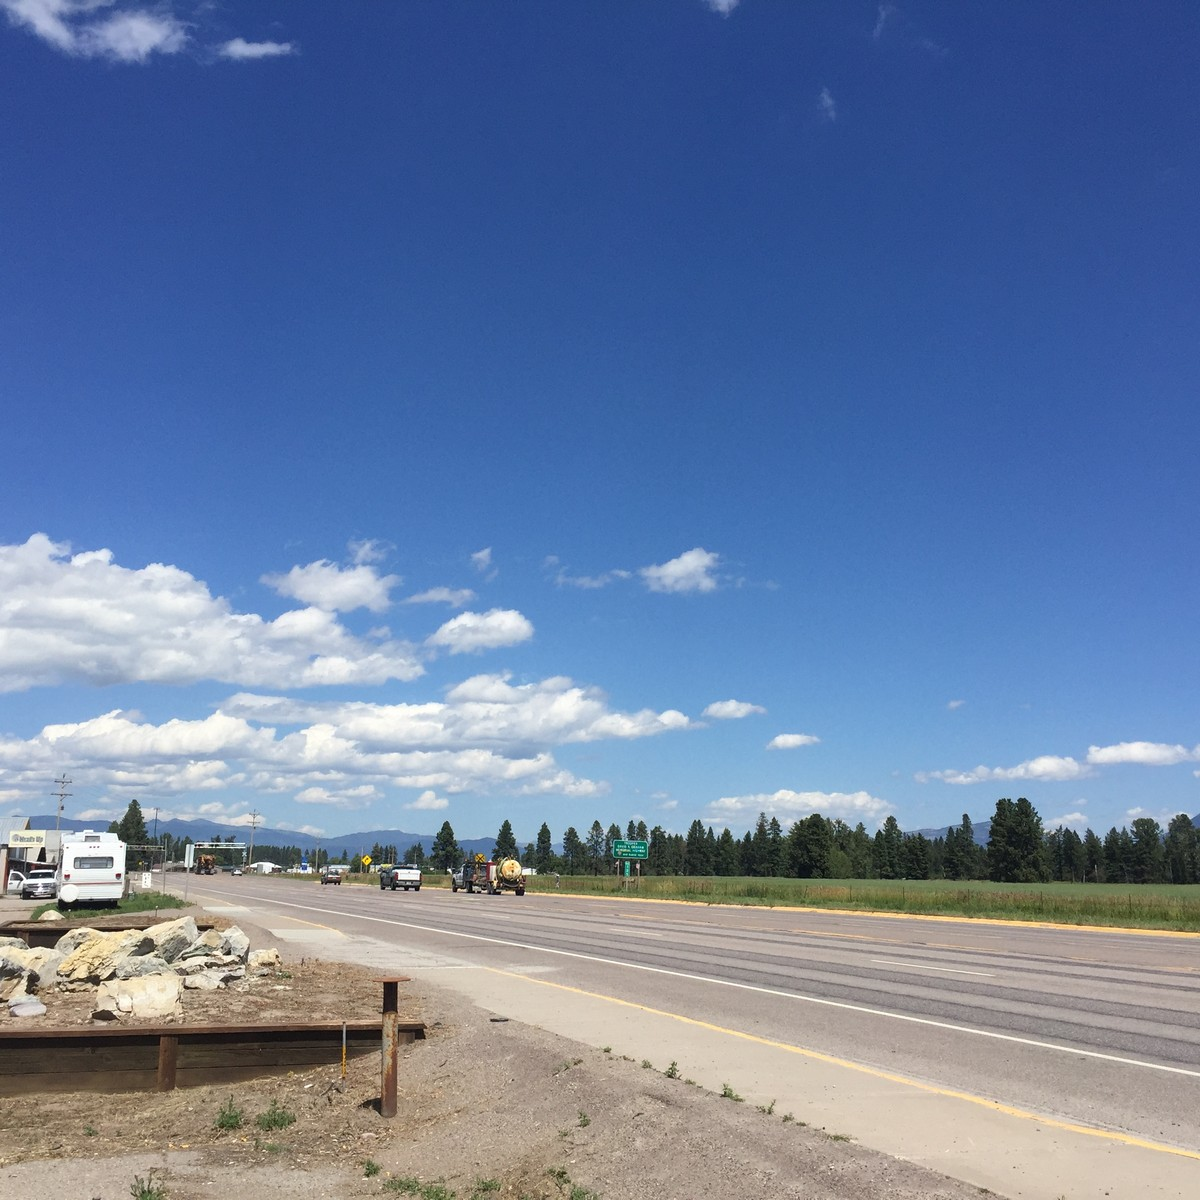 Additional photo for property listing at 2664 Us Highway 2 E, Kalispell, MT 59901 2664  Us Highway 2   E Kalispell, Montana 59901 United States